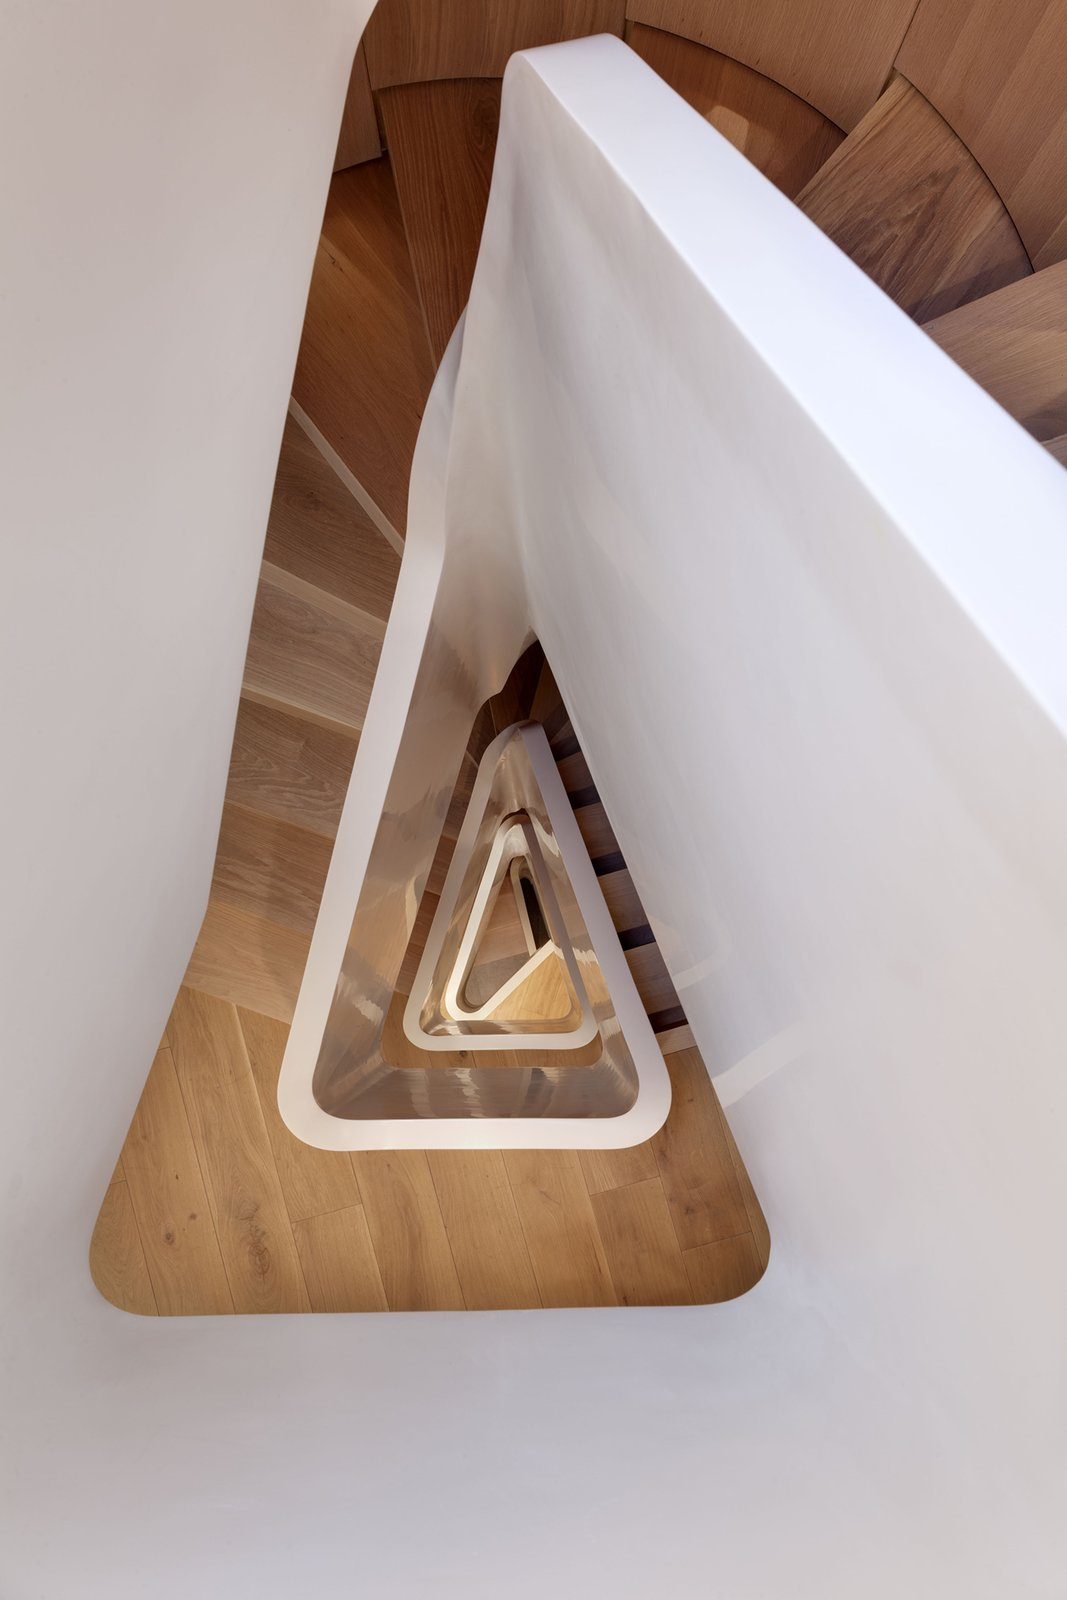 Staircase and Wood Tread The staircase is about 46 feet tall from top to bottom.  190+ Best Modern Staircase Ideas from Amazing Five-Story Staircase Twists Through a Narrow London Home